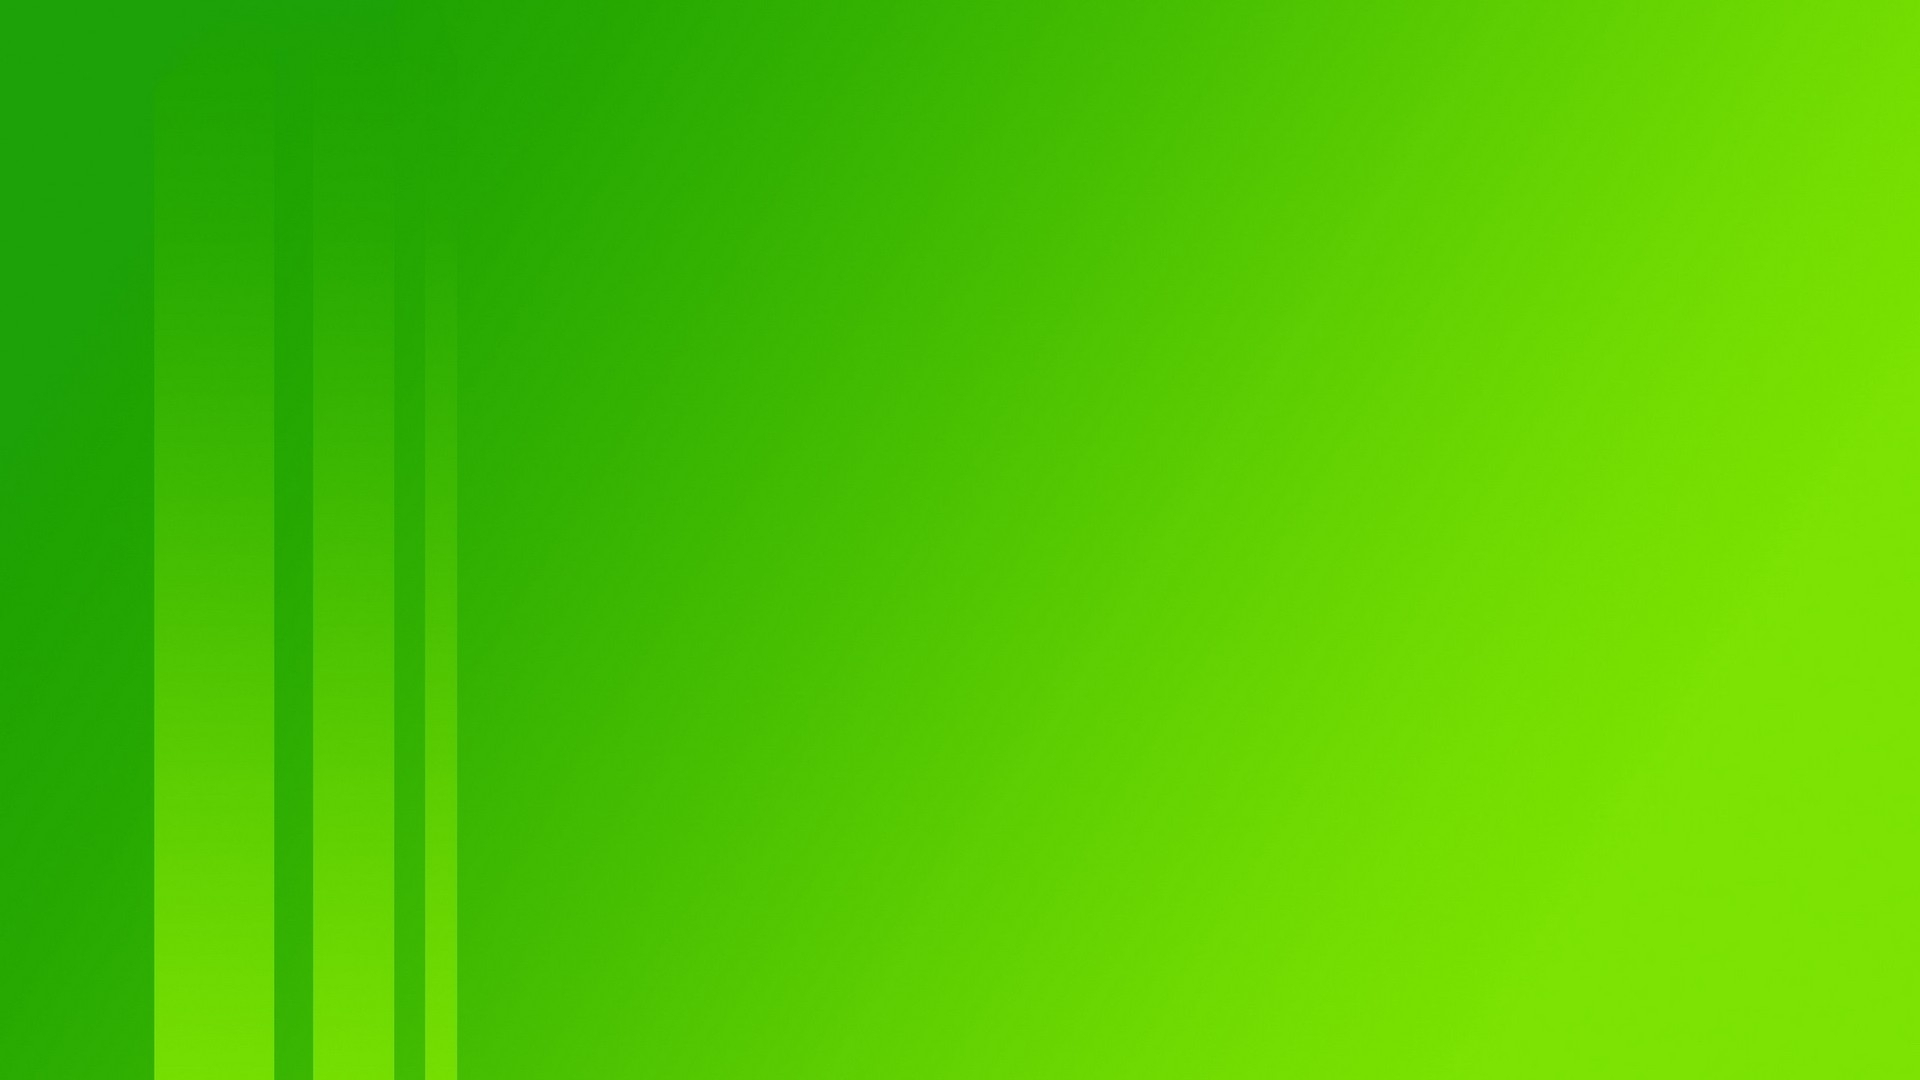 Solid Green Background   wallpaper 1920x1080